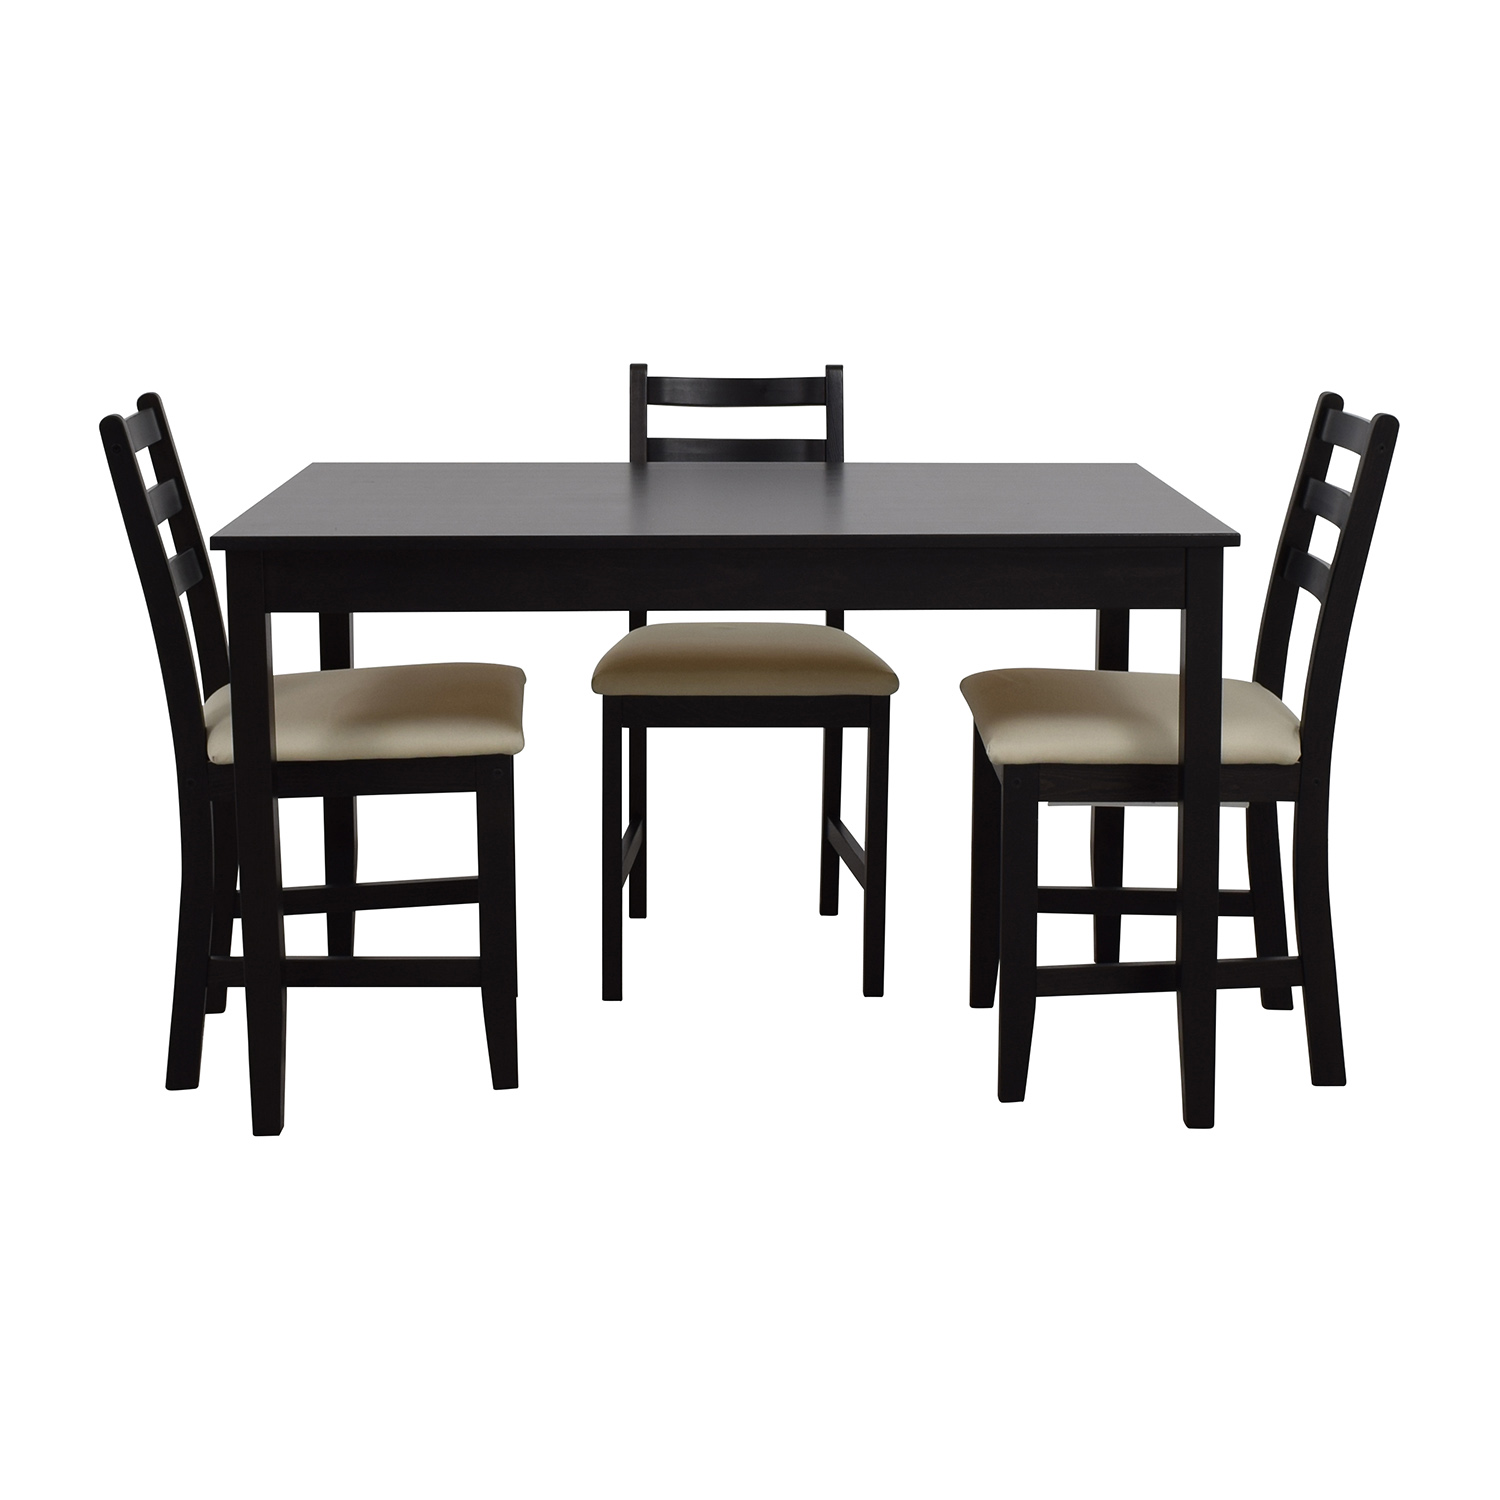 IKEA IKEA Wood Dining Set With Three Chairs / Tables